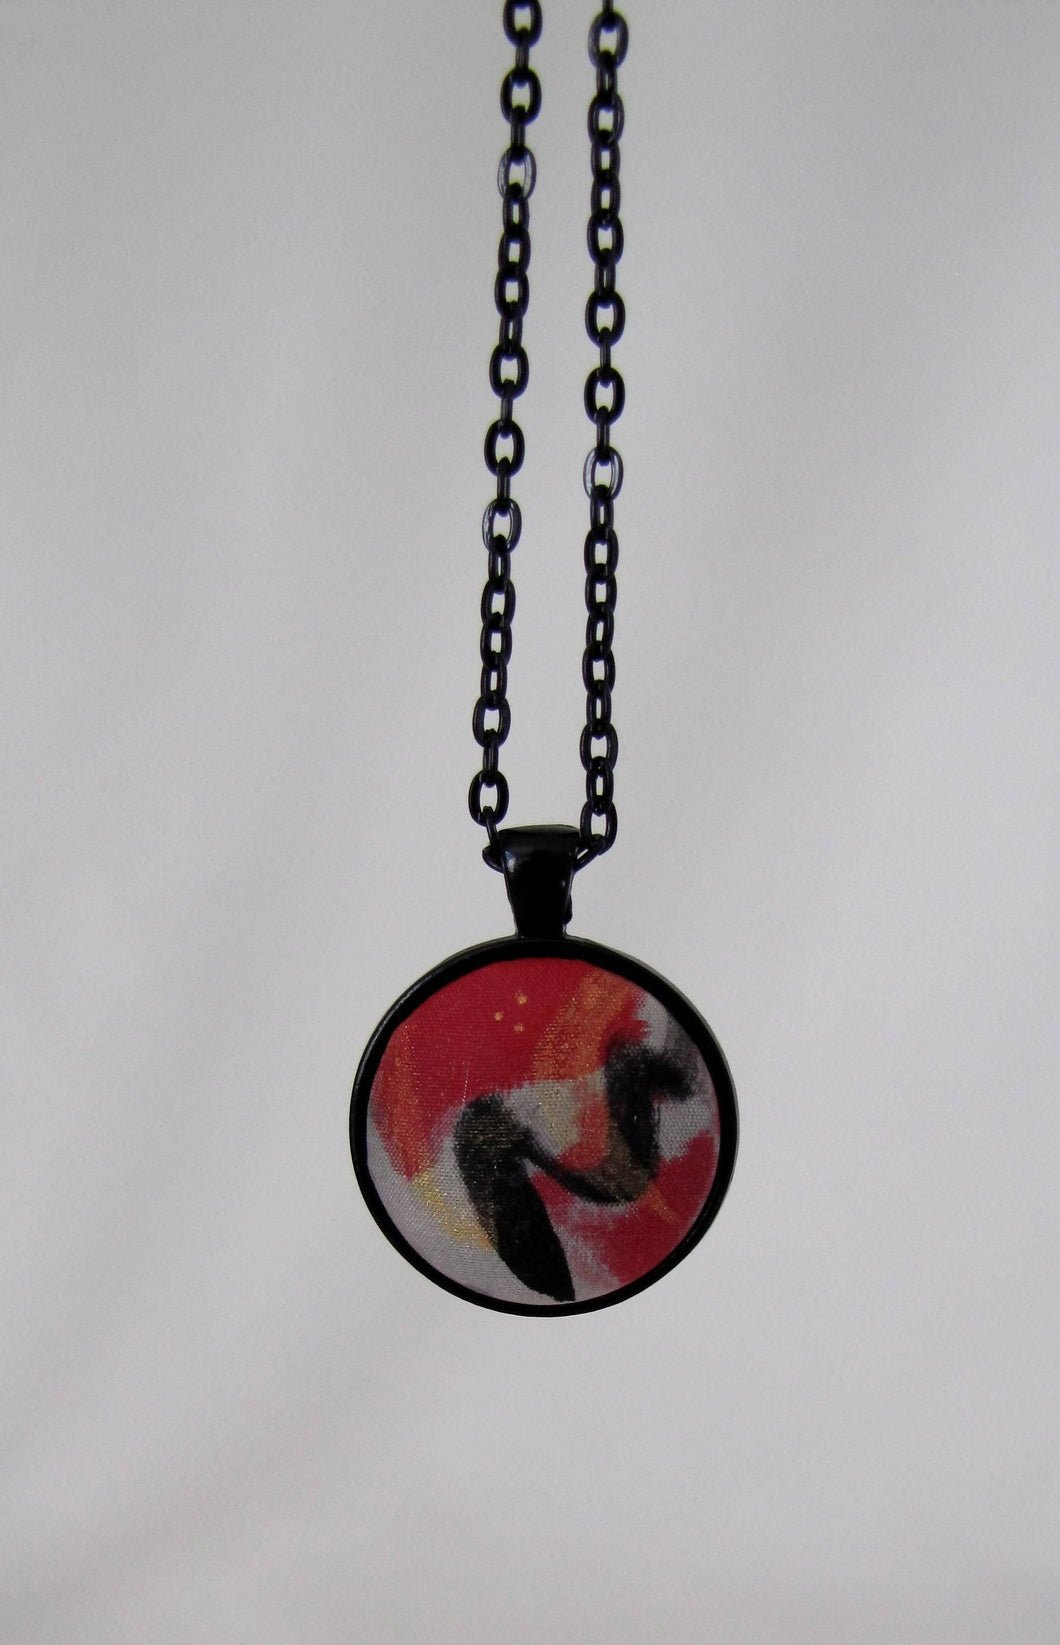 Silk Pendant Necklace, Black White Red Gold Hand-Painted, Unique Woman's Mother's Day Birthday Gift, Made in USA